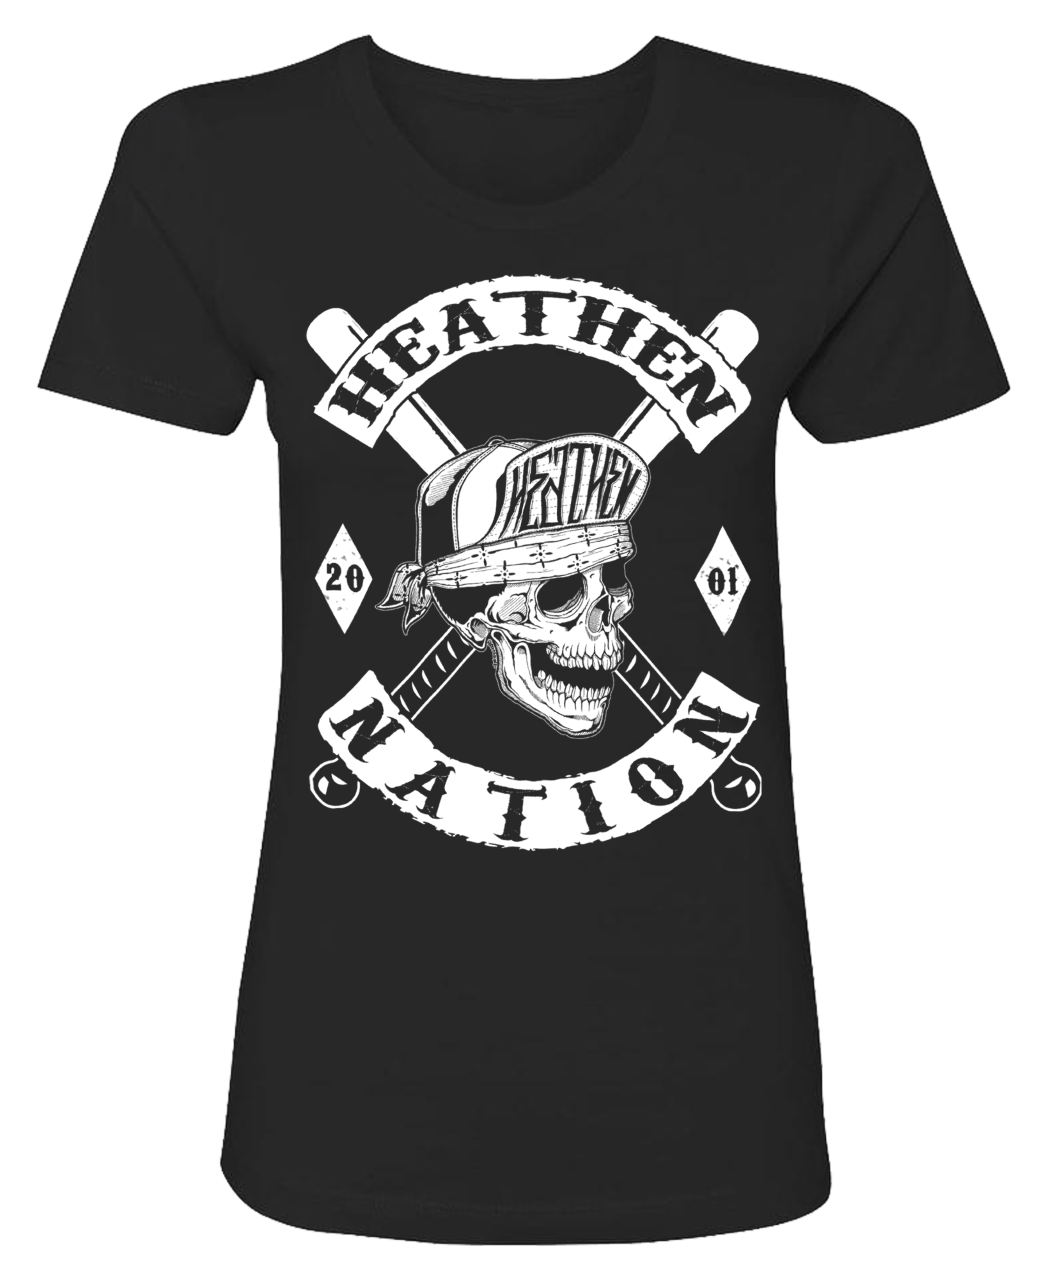 Women's Heathen Nation T-Shirt